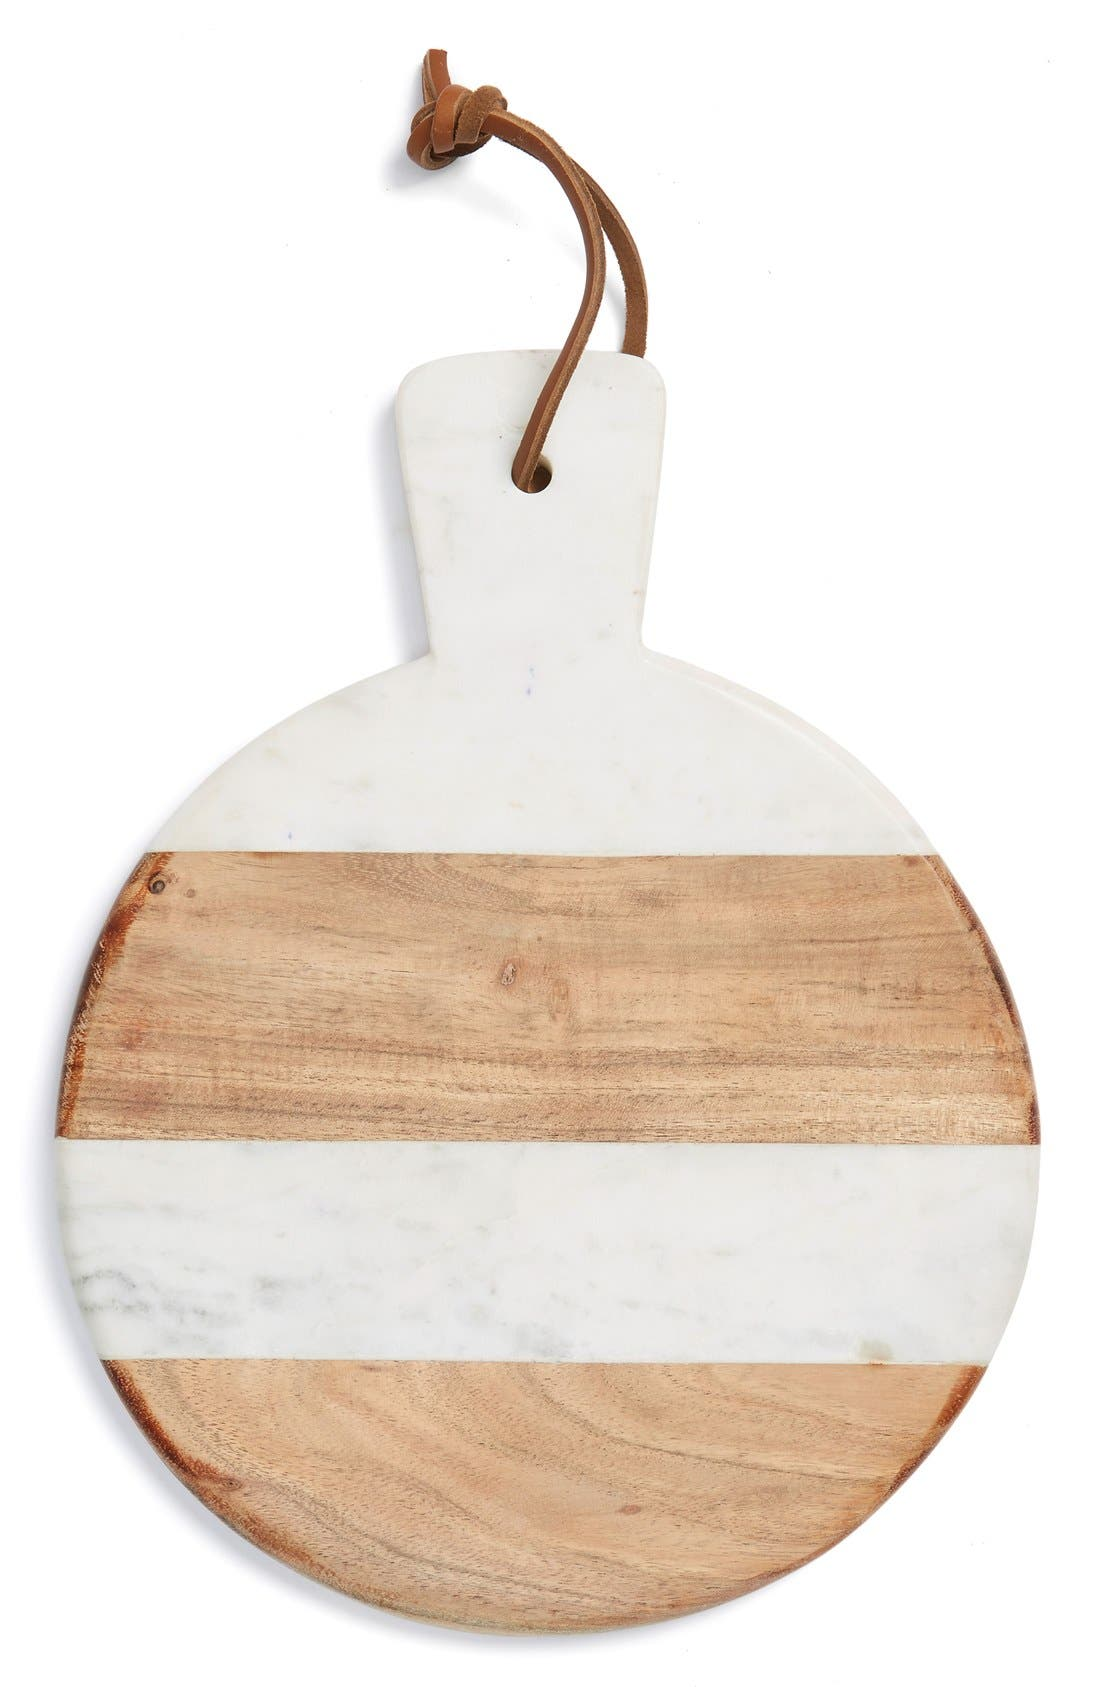 Main Image - Thirstystone Marble & Wood Paddle Serving Board